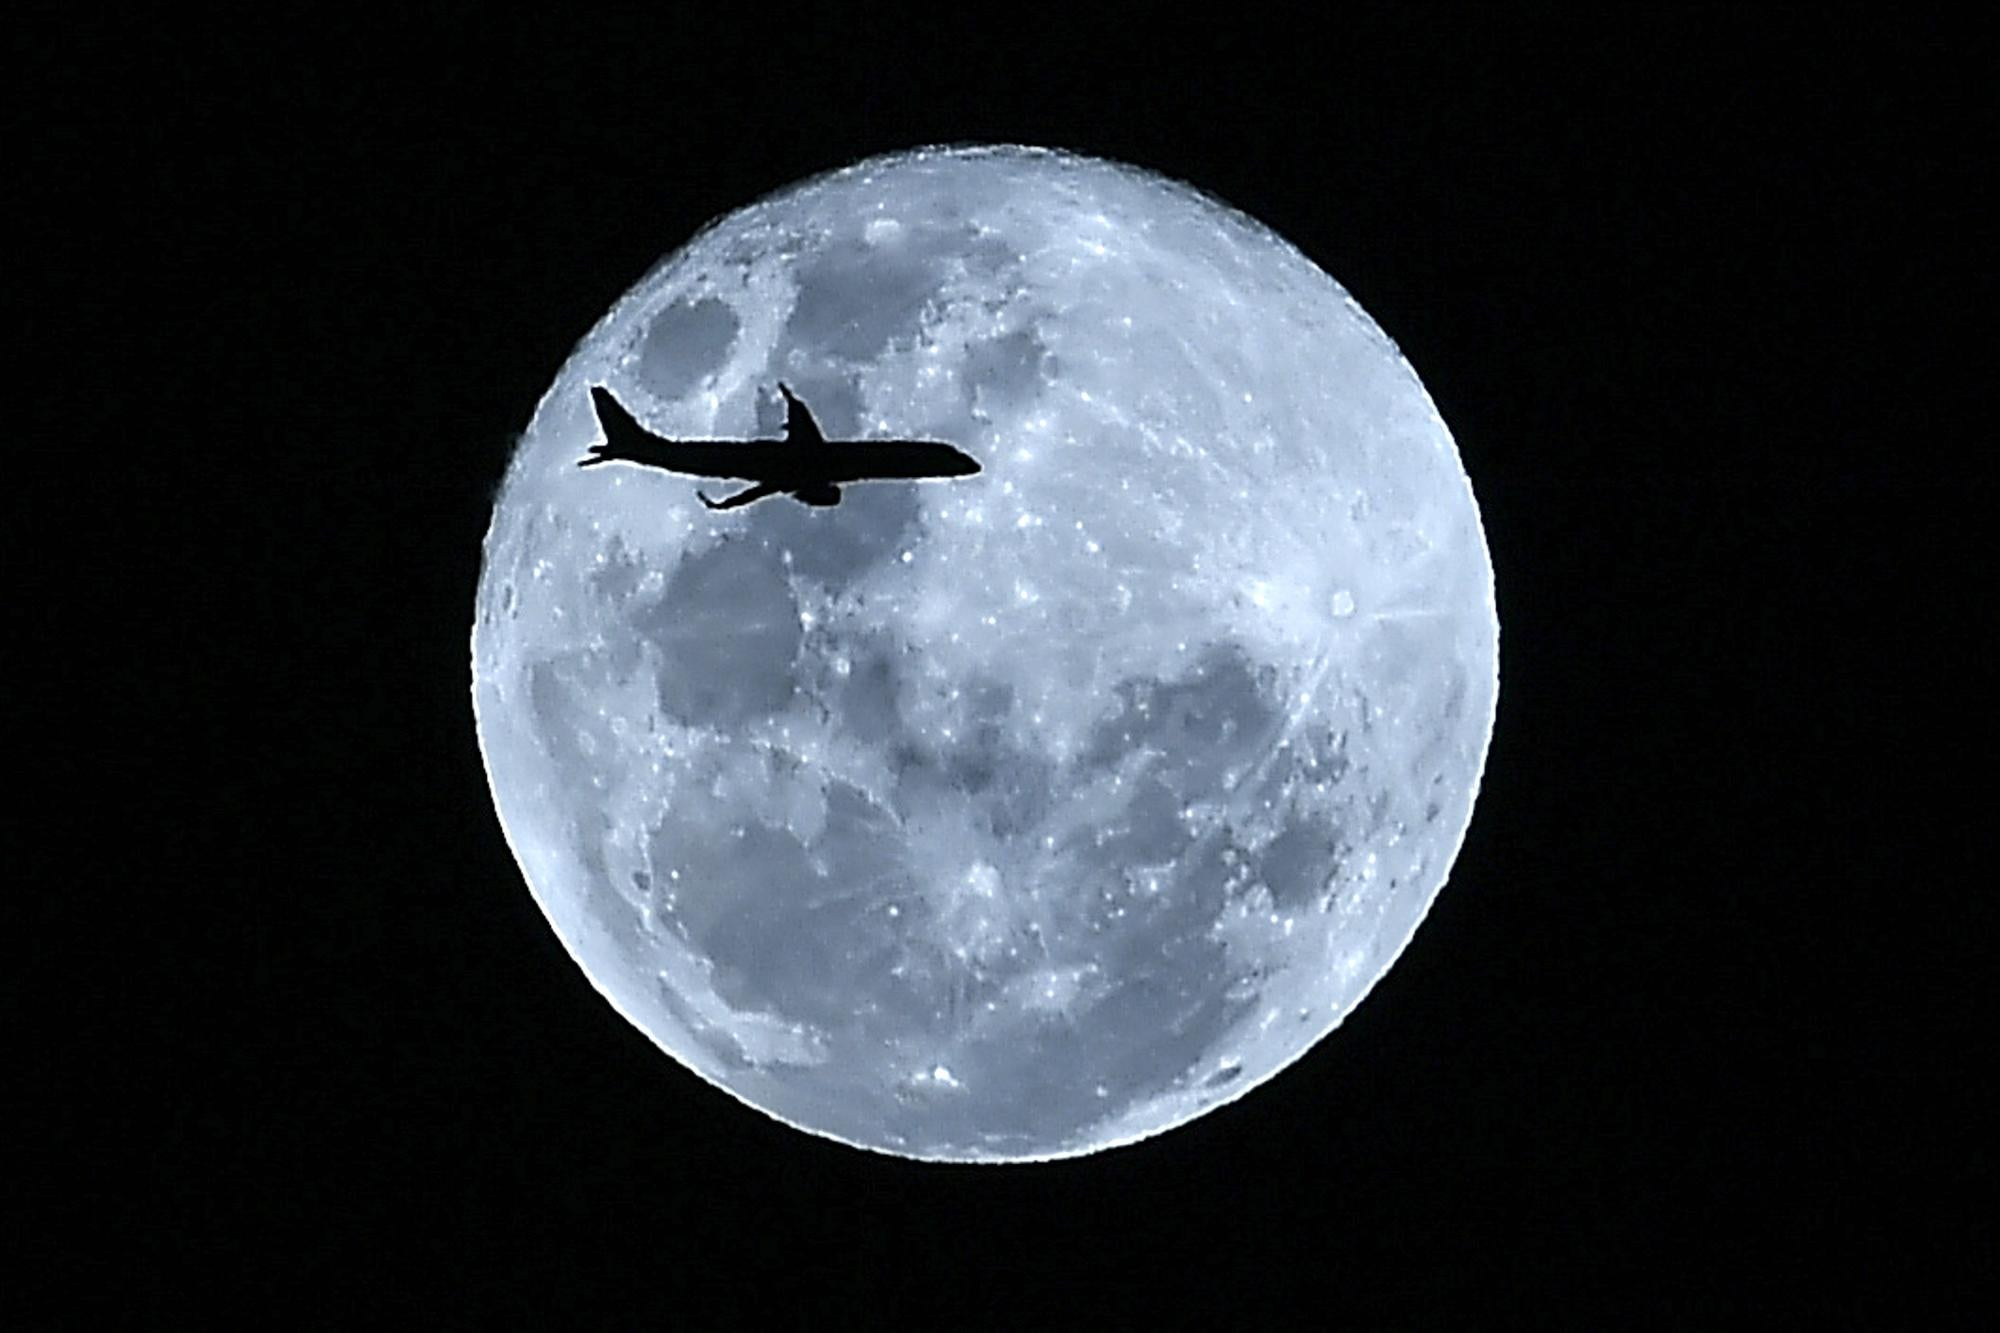 A plane in flight is silhouetted against the 'super blue moon' over Cali, Colombia on January 31, 2018.